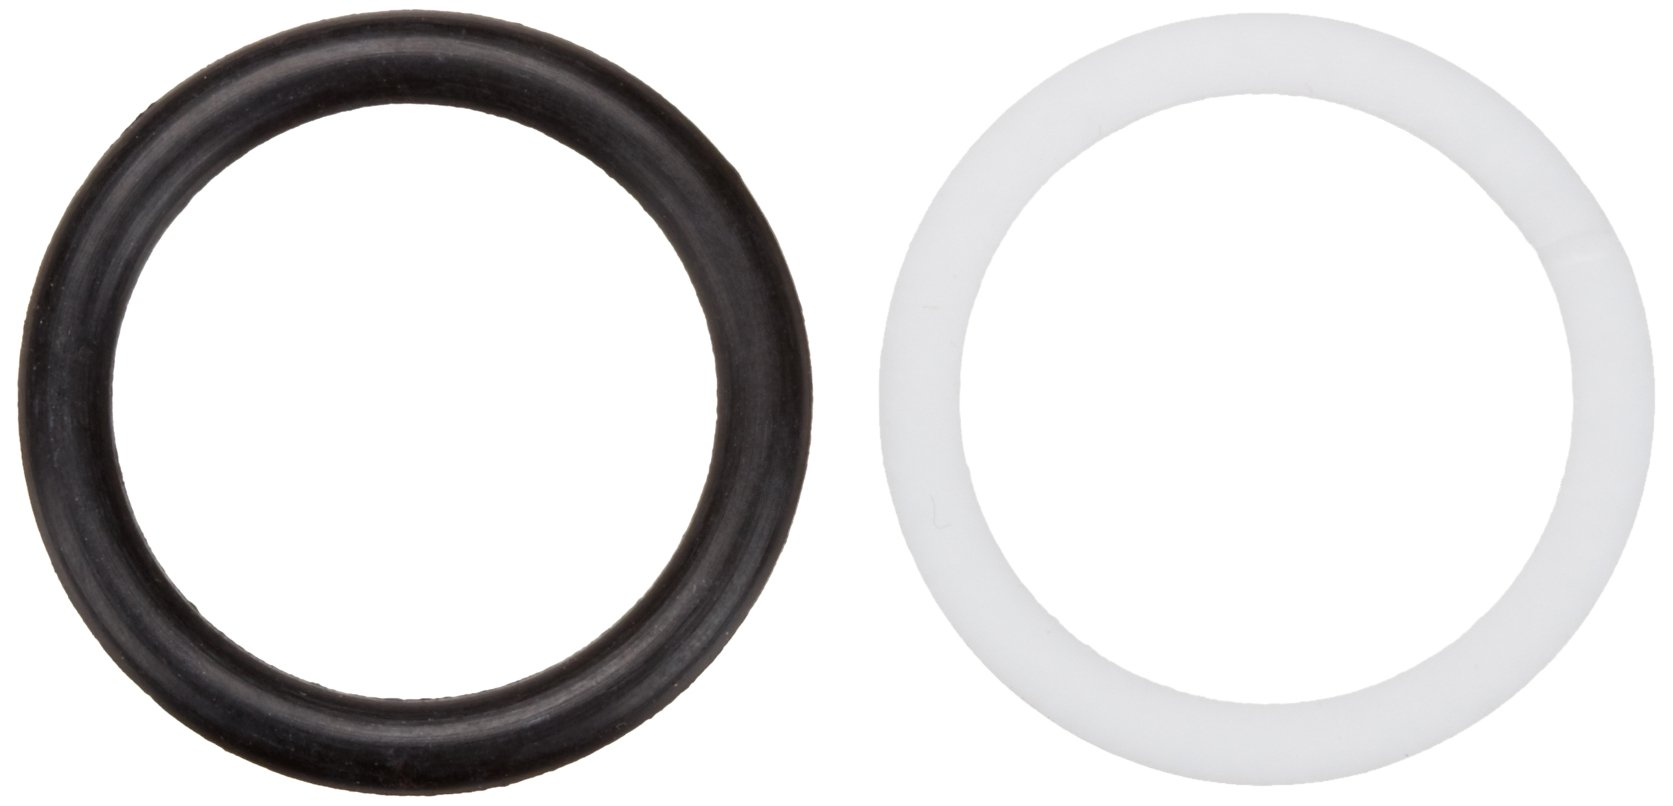 Aladdin O-418-9 Teflon Shaft Seal O-Ring Replacement Kit for Hayward Vari Flo Pool and Spa Filter Valves